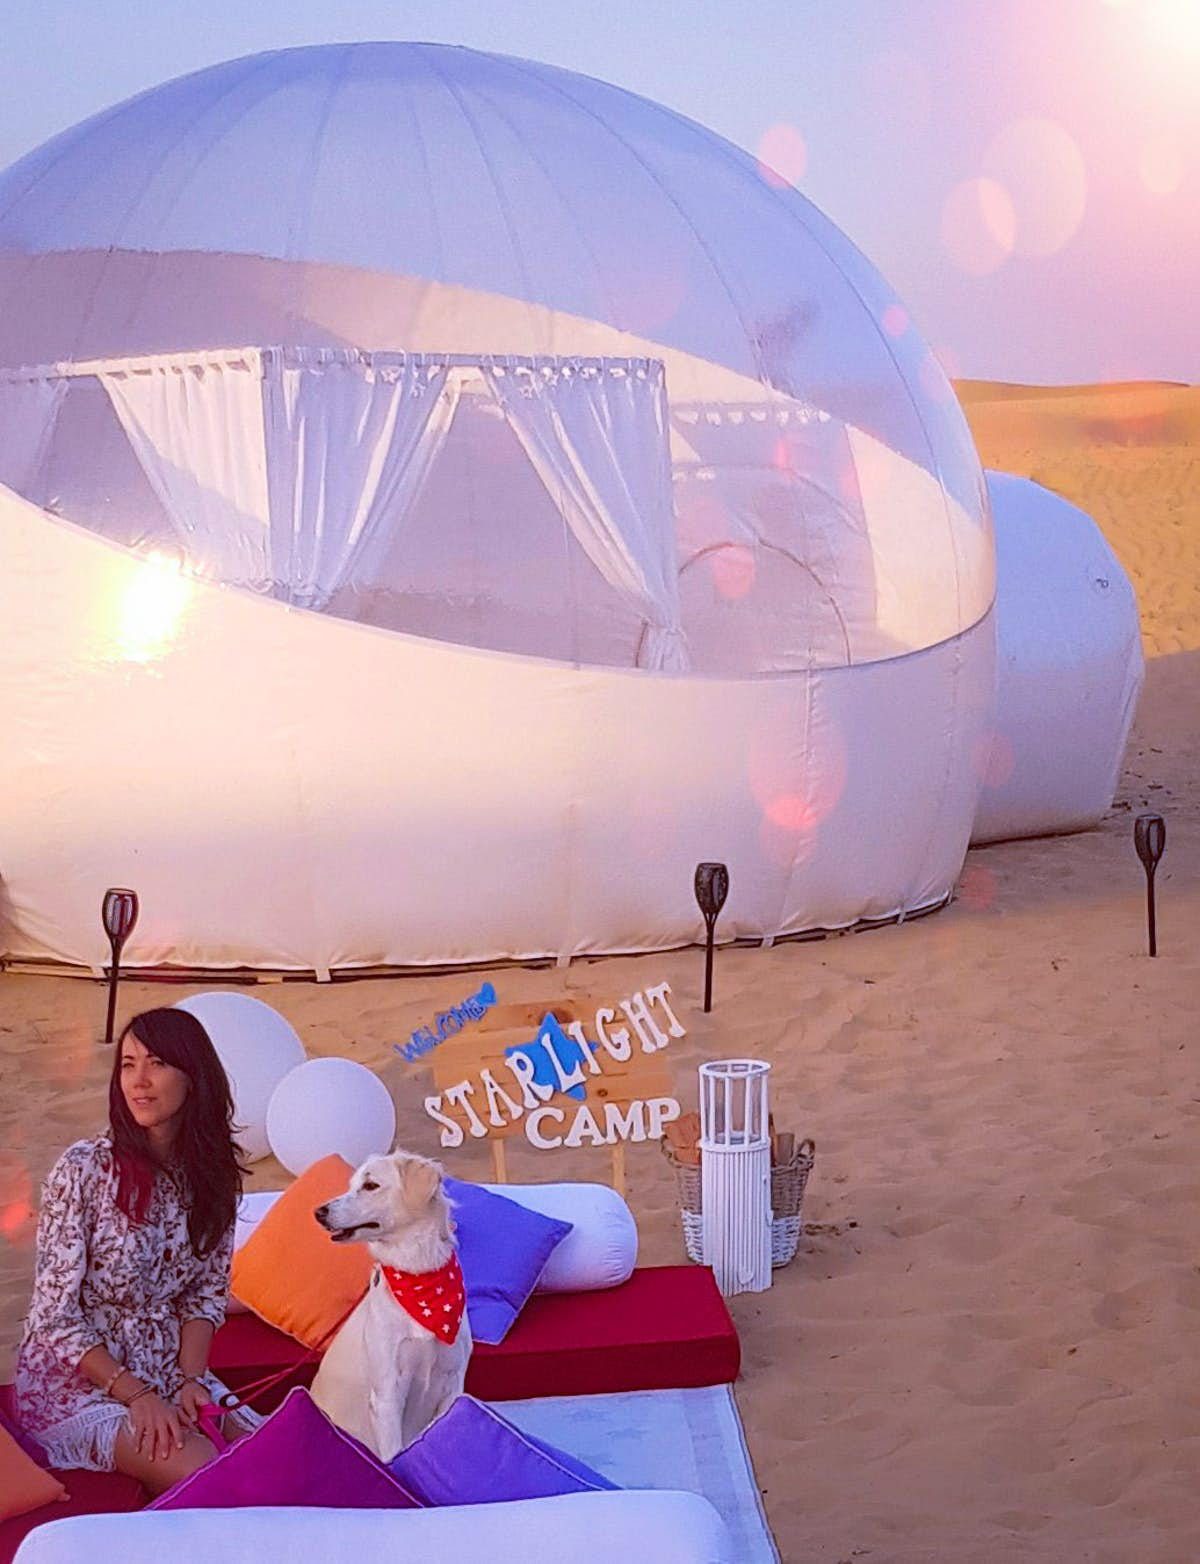 You and your dog can enjoy a night under the stars in a bubble tent outside Dubai